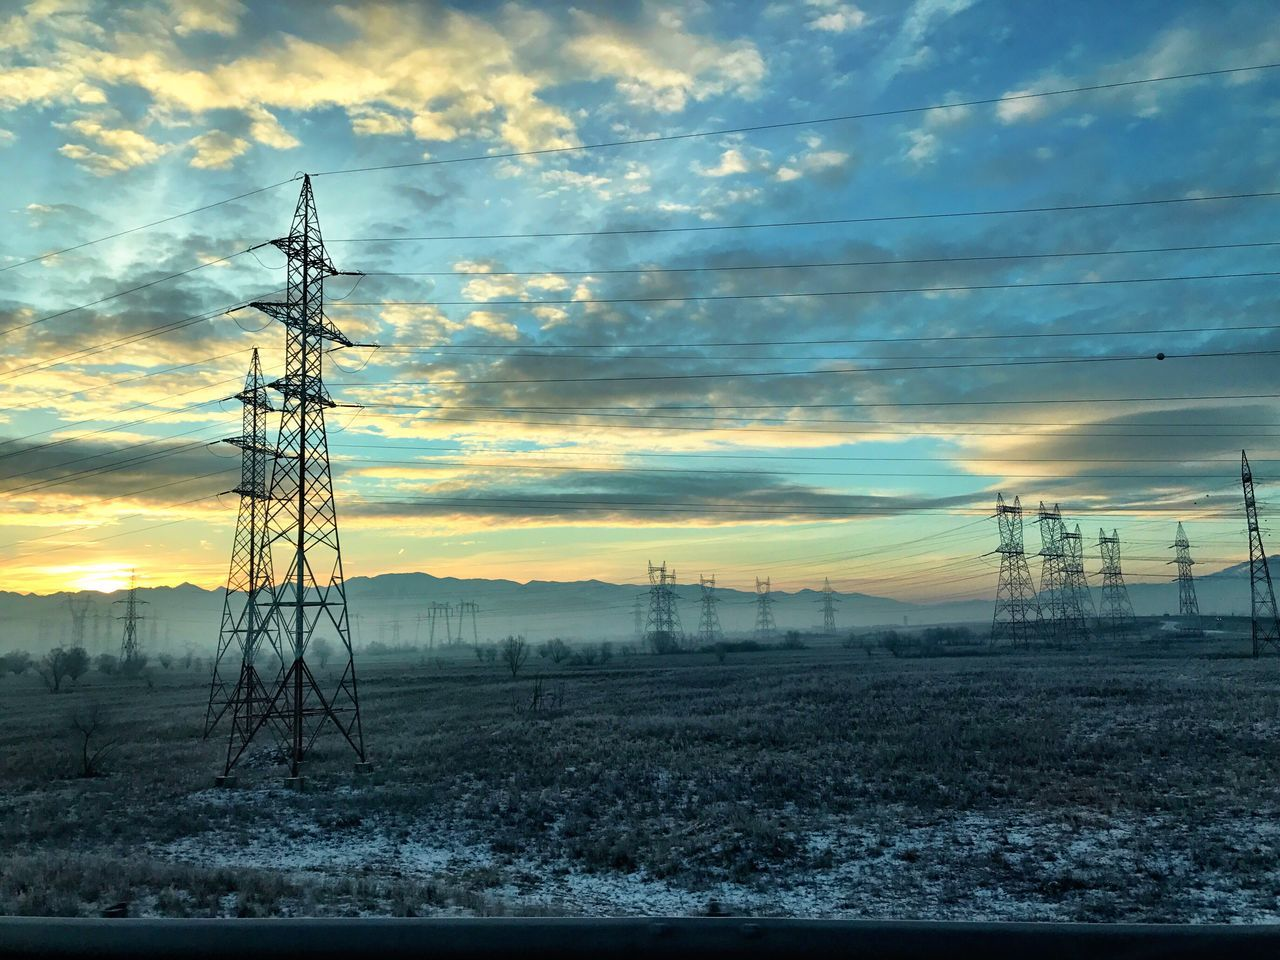 Connection Electricity  Sky Cable Electricity Pylon Power Supply Cloud - Sky Technology No People Power Line  Sunset Field Electricity Tower Nature Outdoors Dramatic Sky Tree Landscape Scenics Beauty In Nature